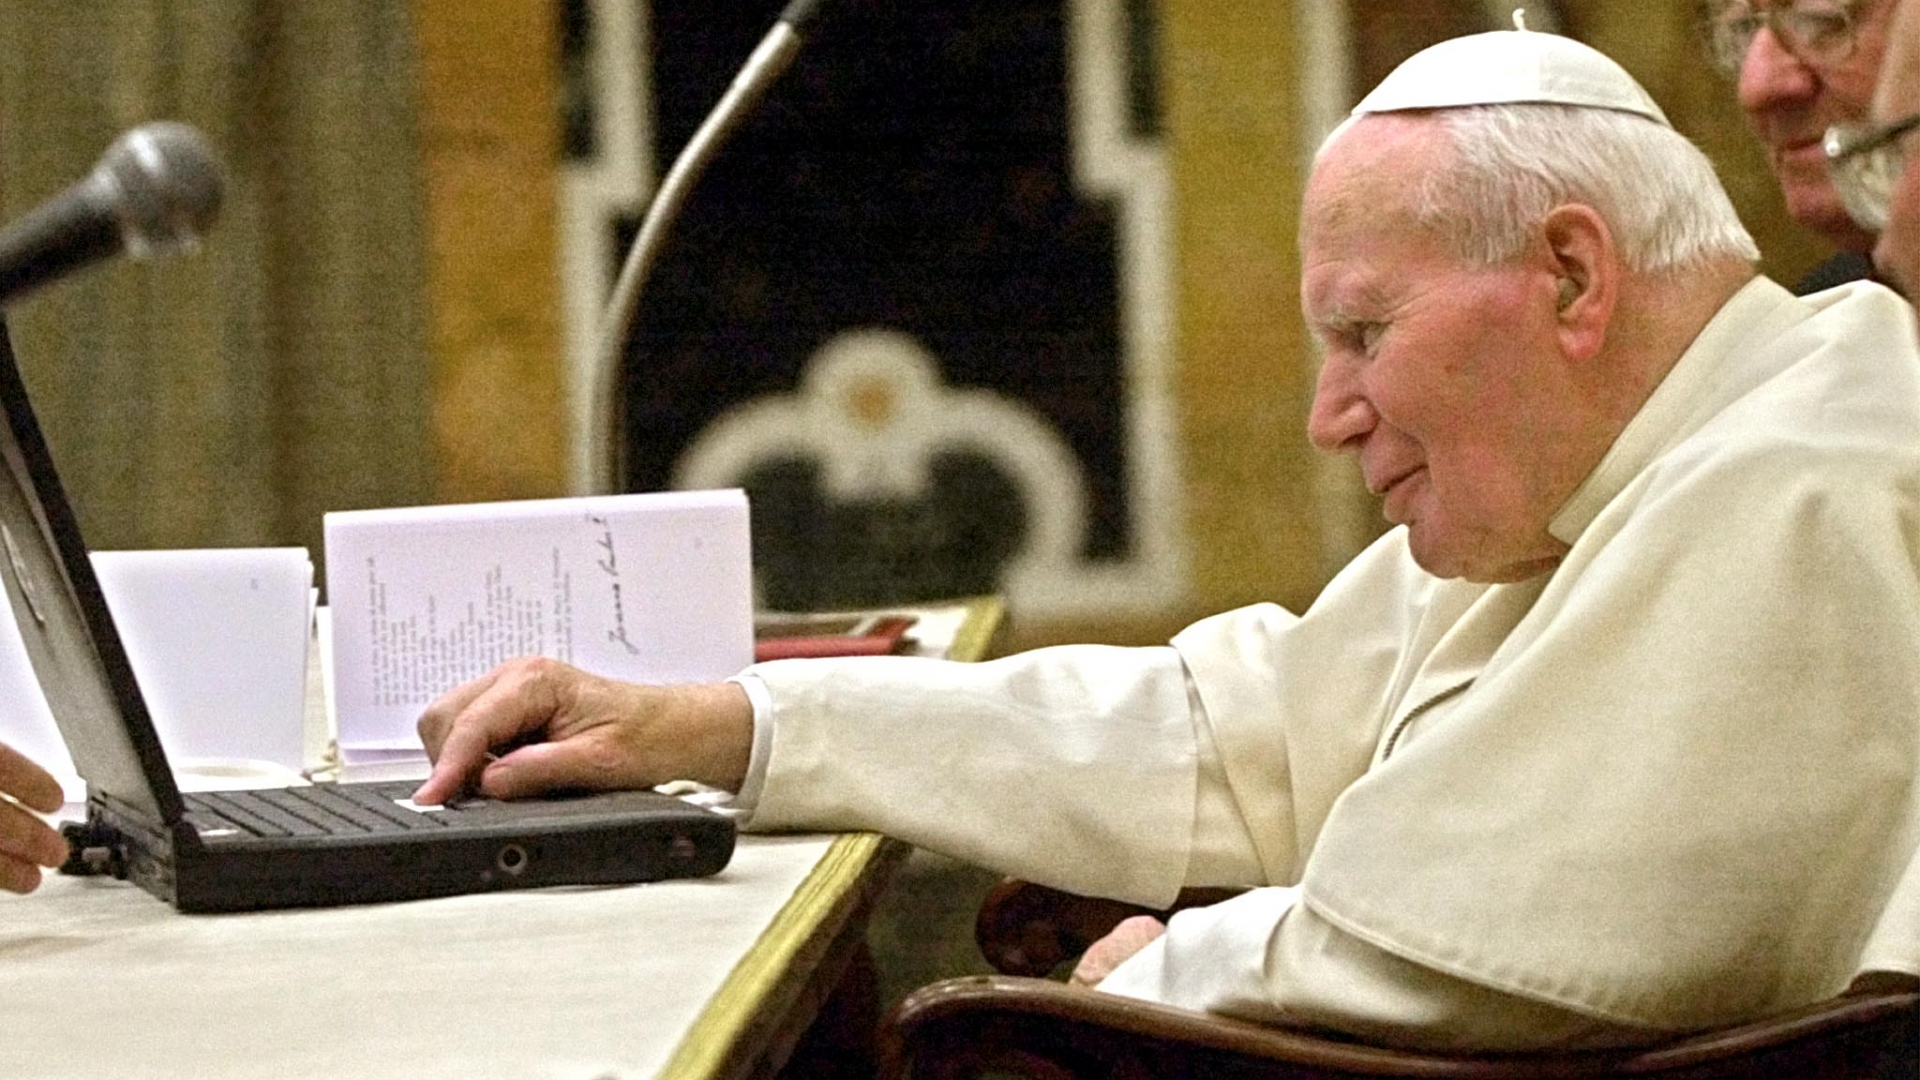 Pope John Paul II sending an e-mail at the Vatican, in his first message sent to the world directly over the Internet, apologizing to victims of sexual abuse by priests and other clergy, including nuns, in the developing world. (Credit: Massimo Sambucetti/AFP/Getty Images)